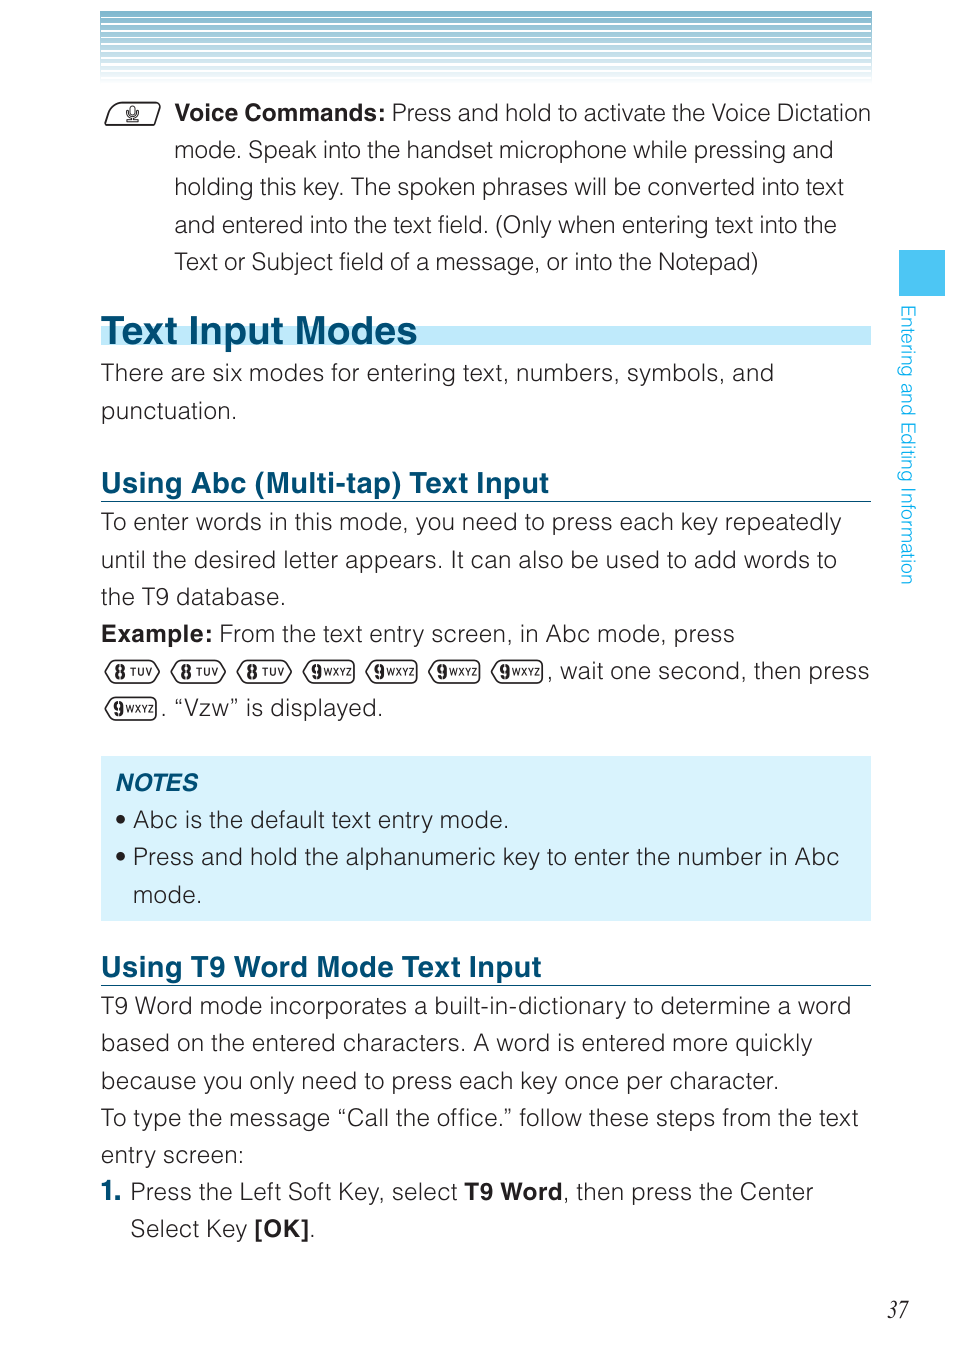 Text input modes, Using abc (multi-tap) text input, Using t9